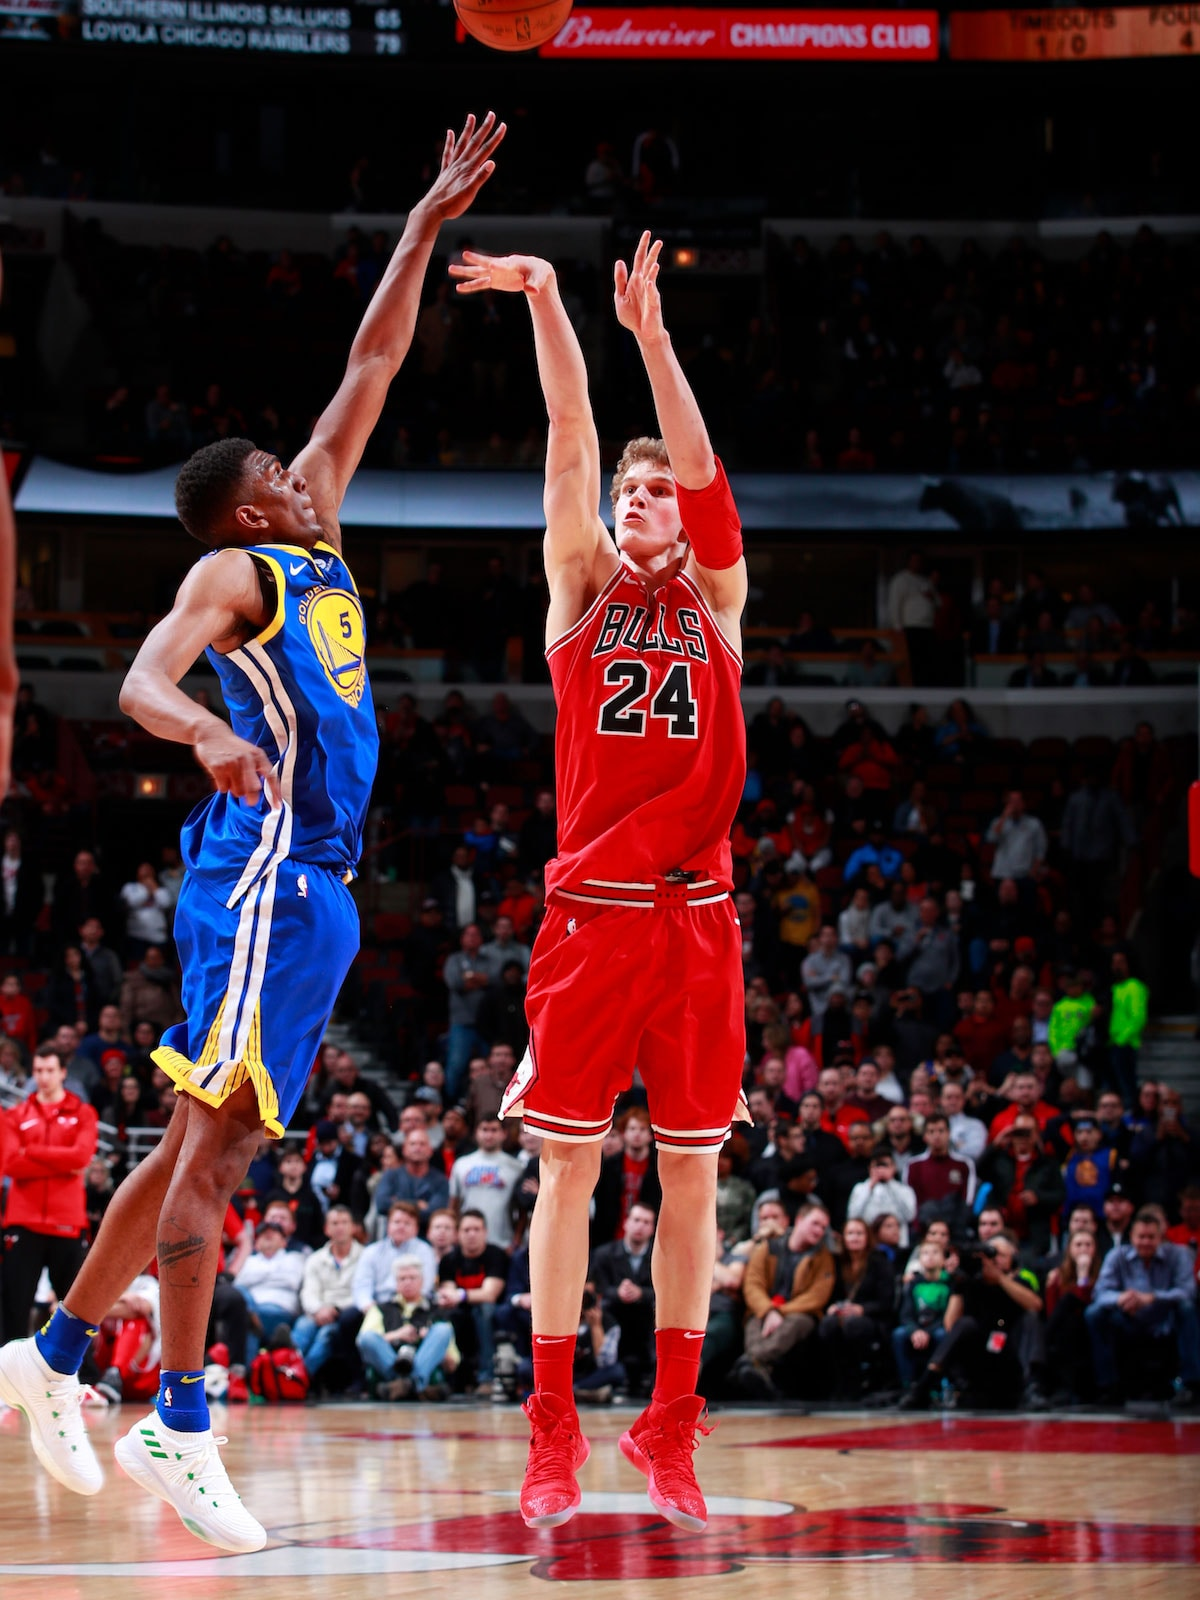 Lauri Markkanen #24 of the Chicago Bulls shoots the ball against the Golden State Warriors on January 17, 2018 at the United Center in Chicago, Illinois